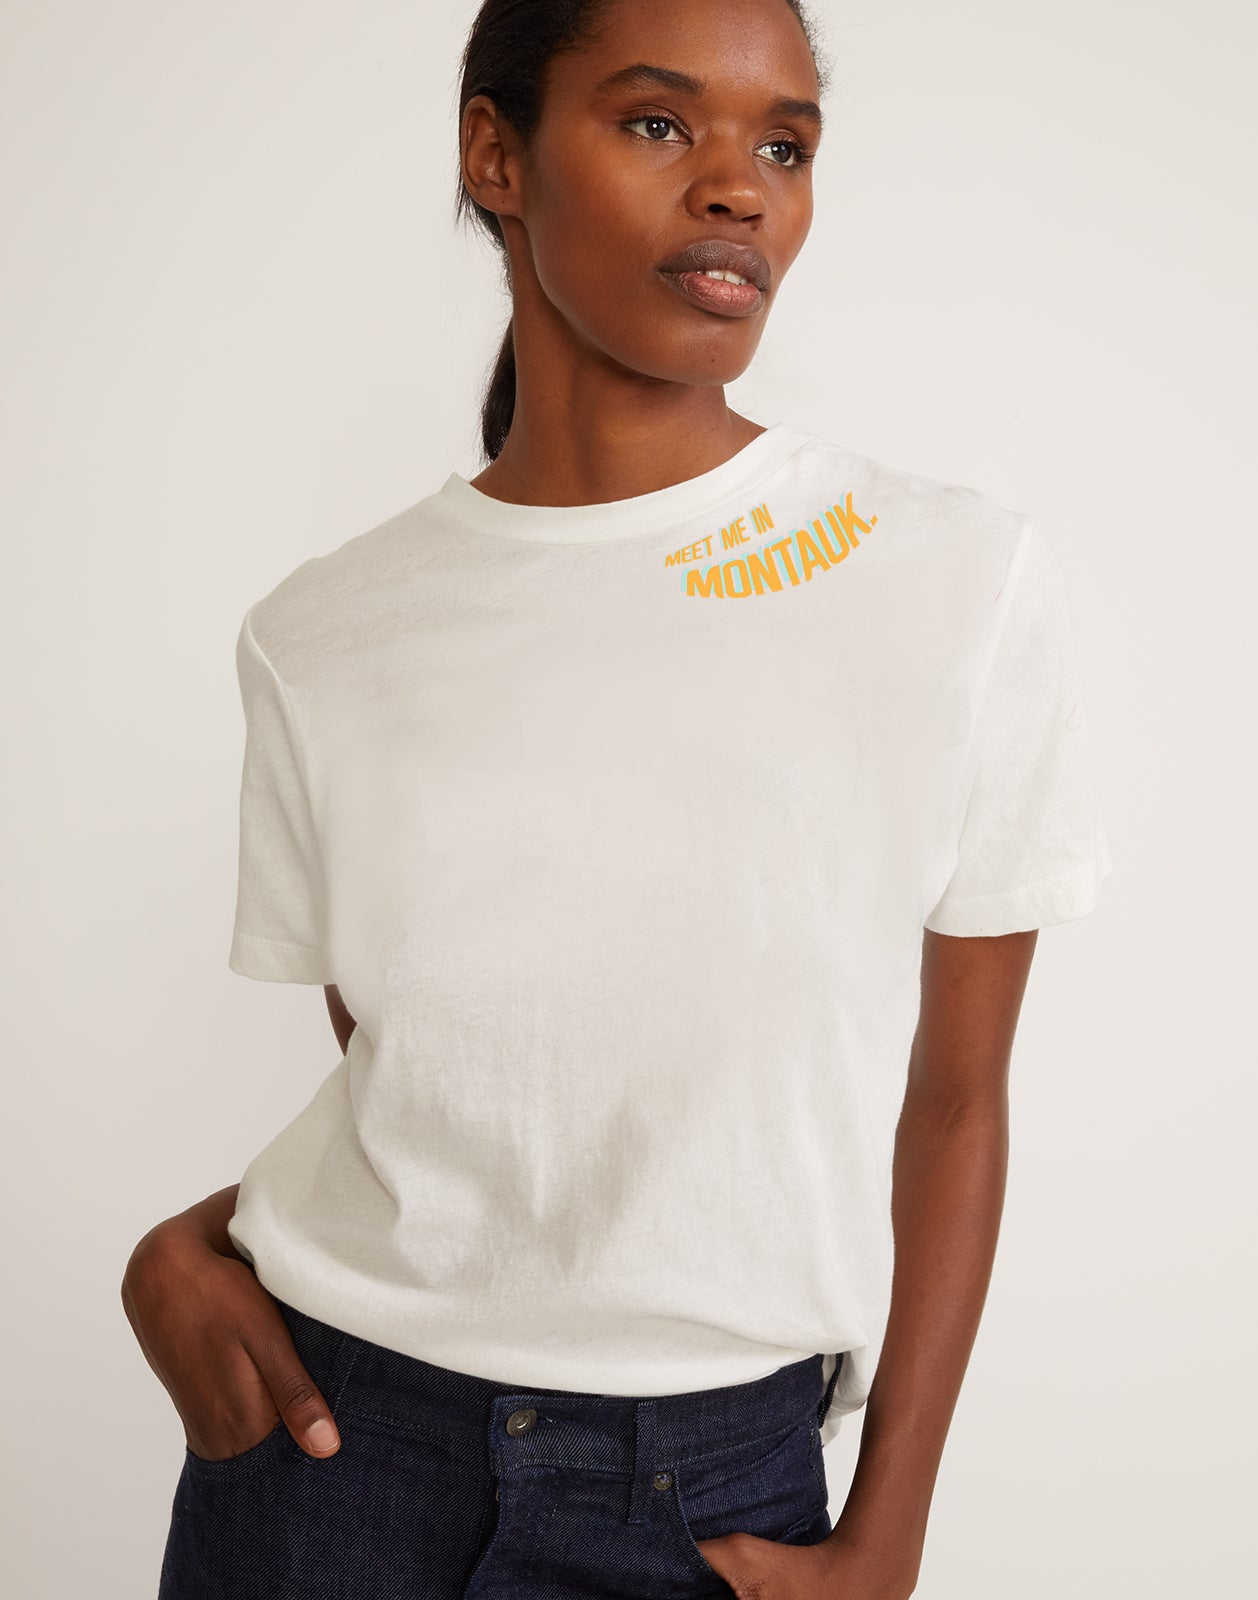 Meet me in Montauk Tee in white cotton with yellow and light blue printed lettering.